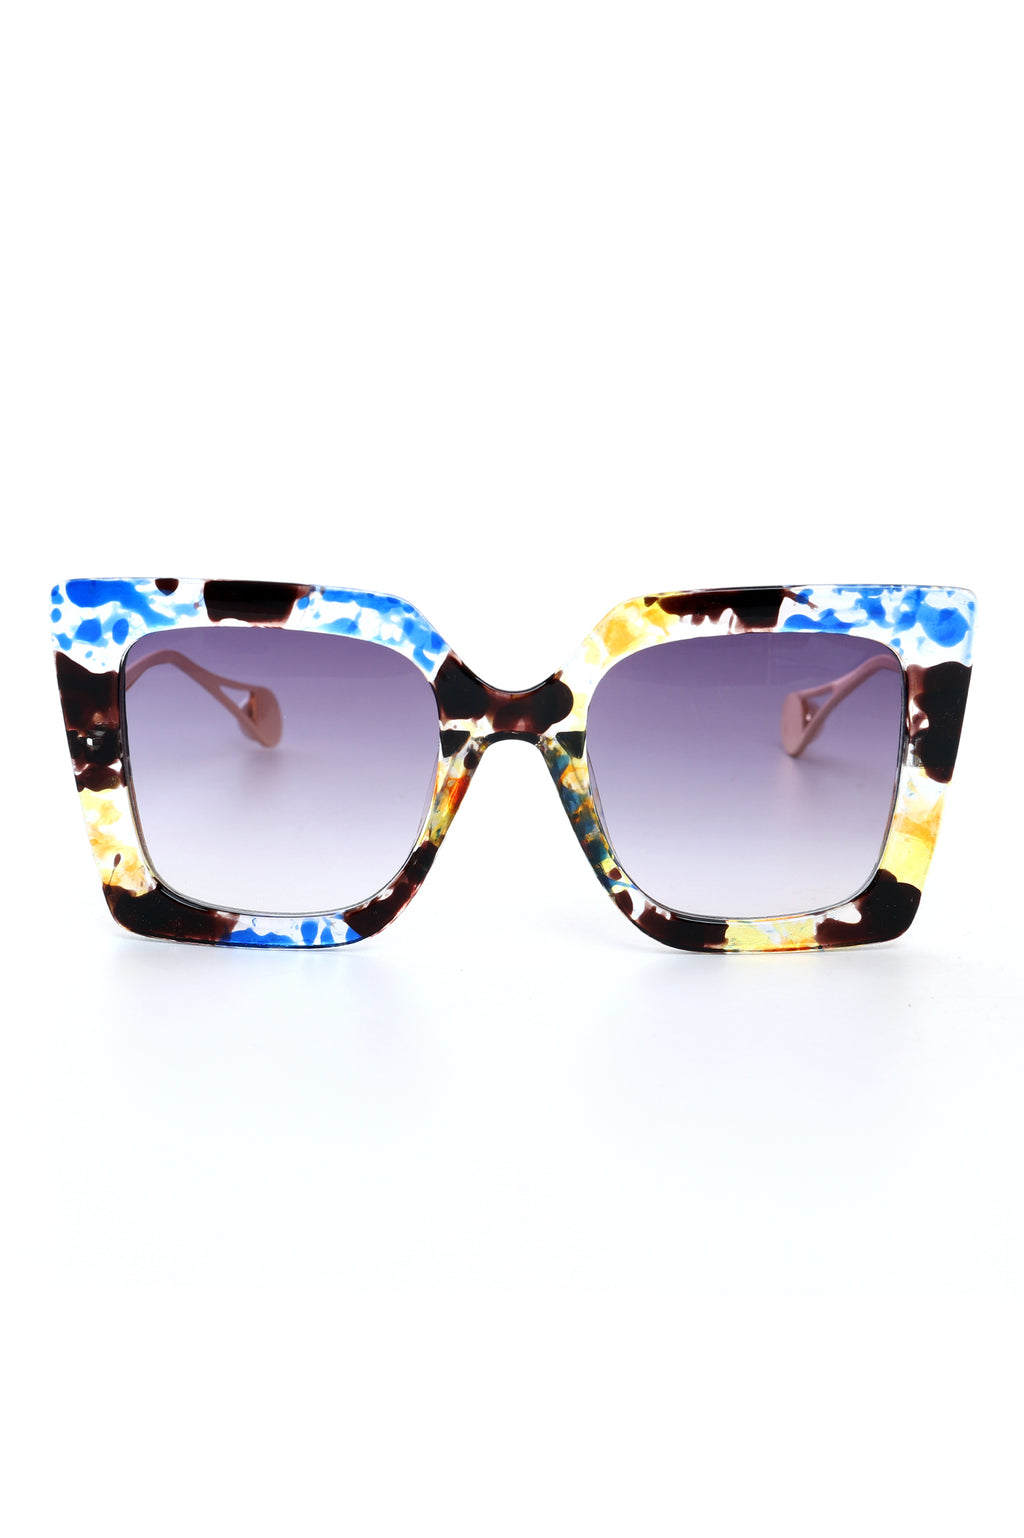 VOGUE SUNGLASSES -MULTI